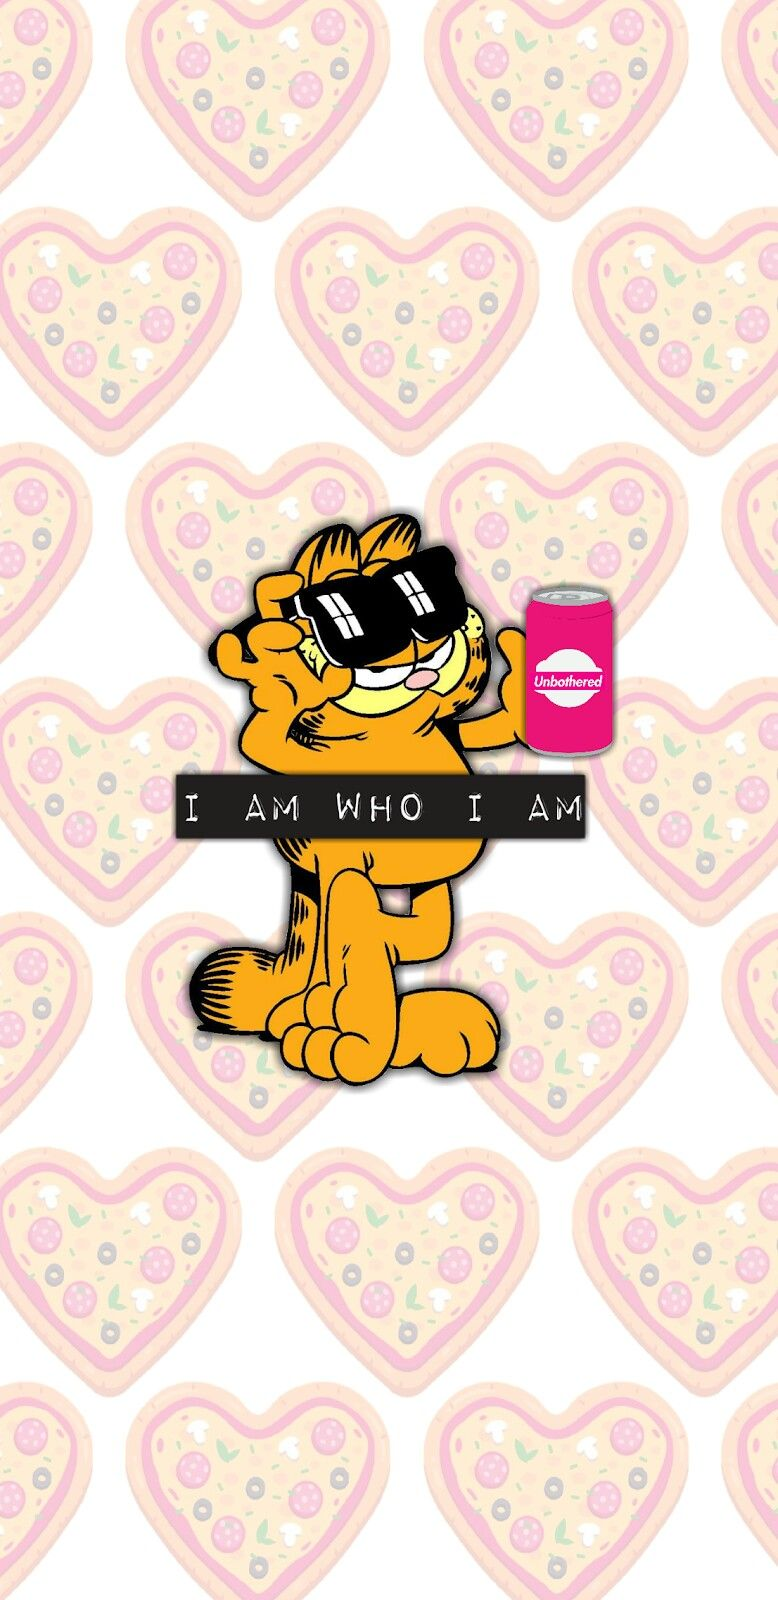 Pin By Angelmom4 On Cute Wallz Garfield Wallpaper Iphone Wallpaper Quotes Funny Lock Screen Wallpaper Iphone